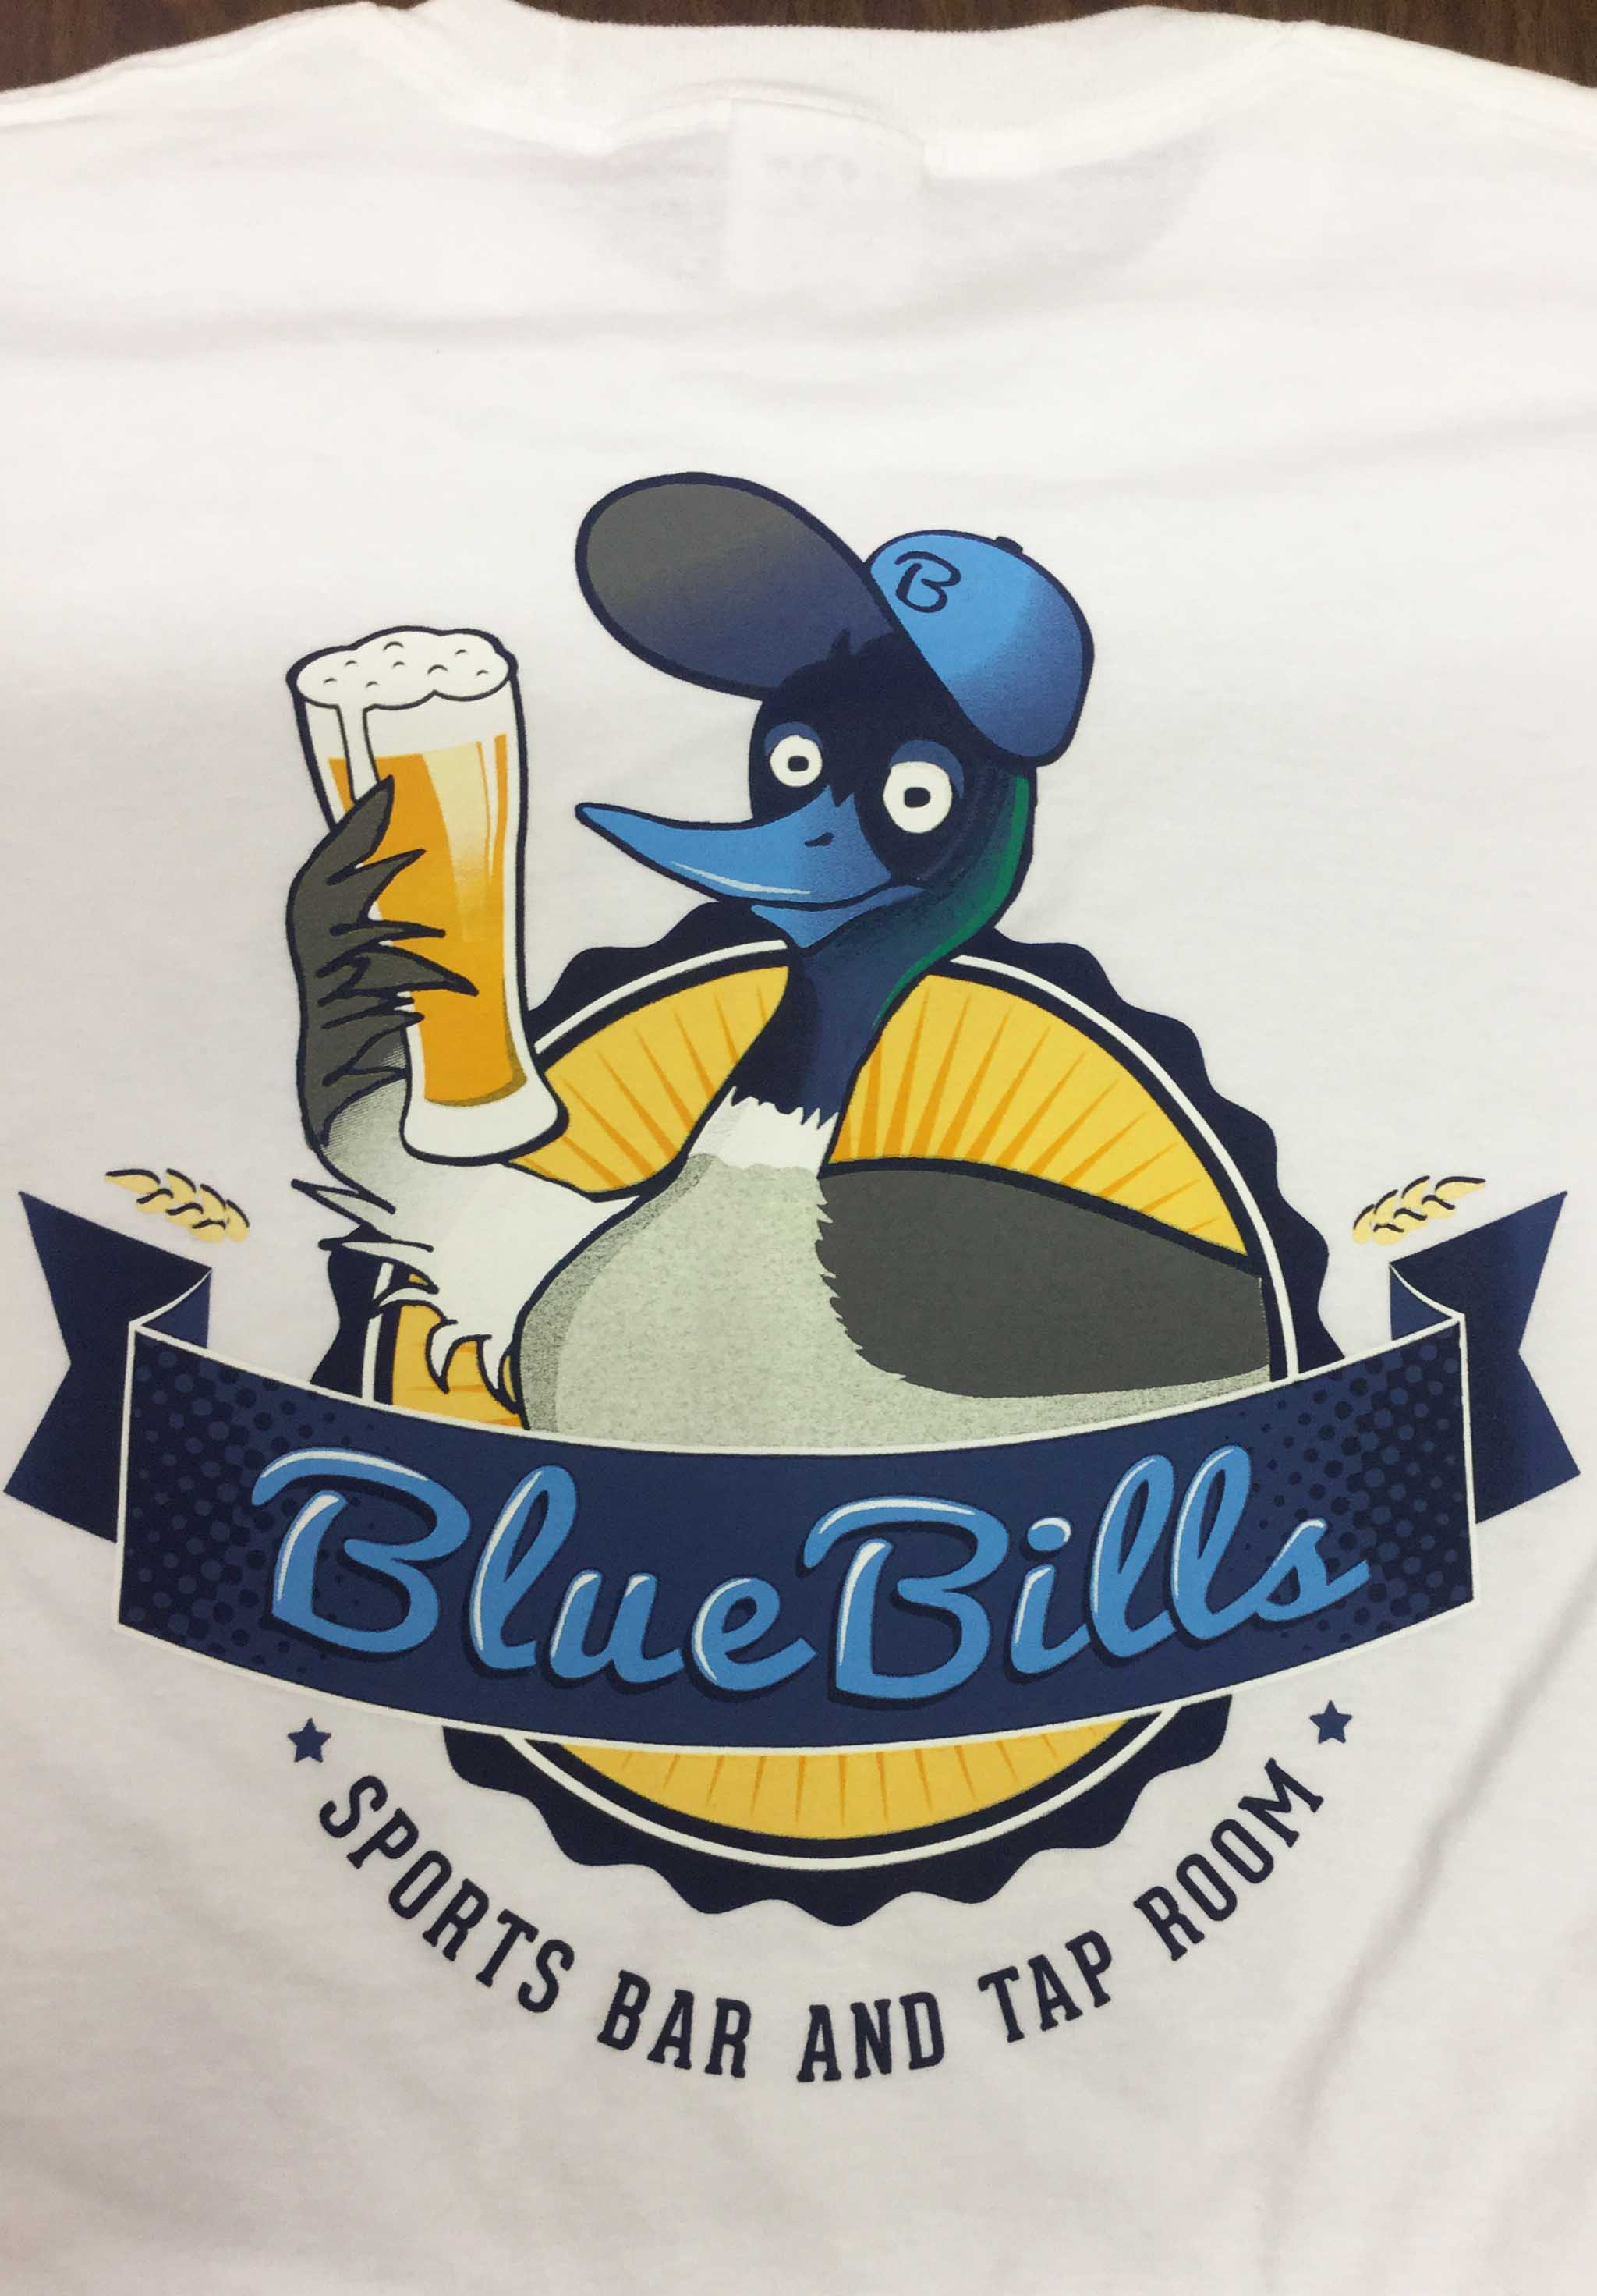 bluebills fixed.jpg